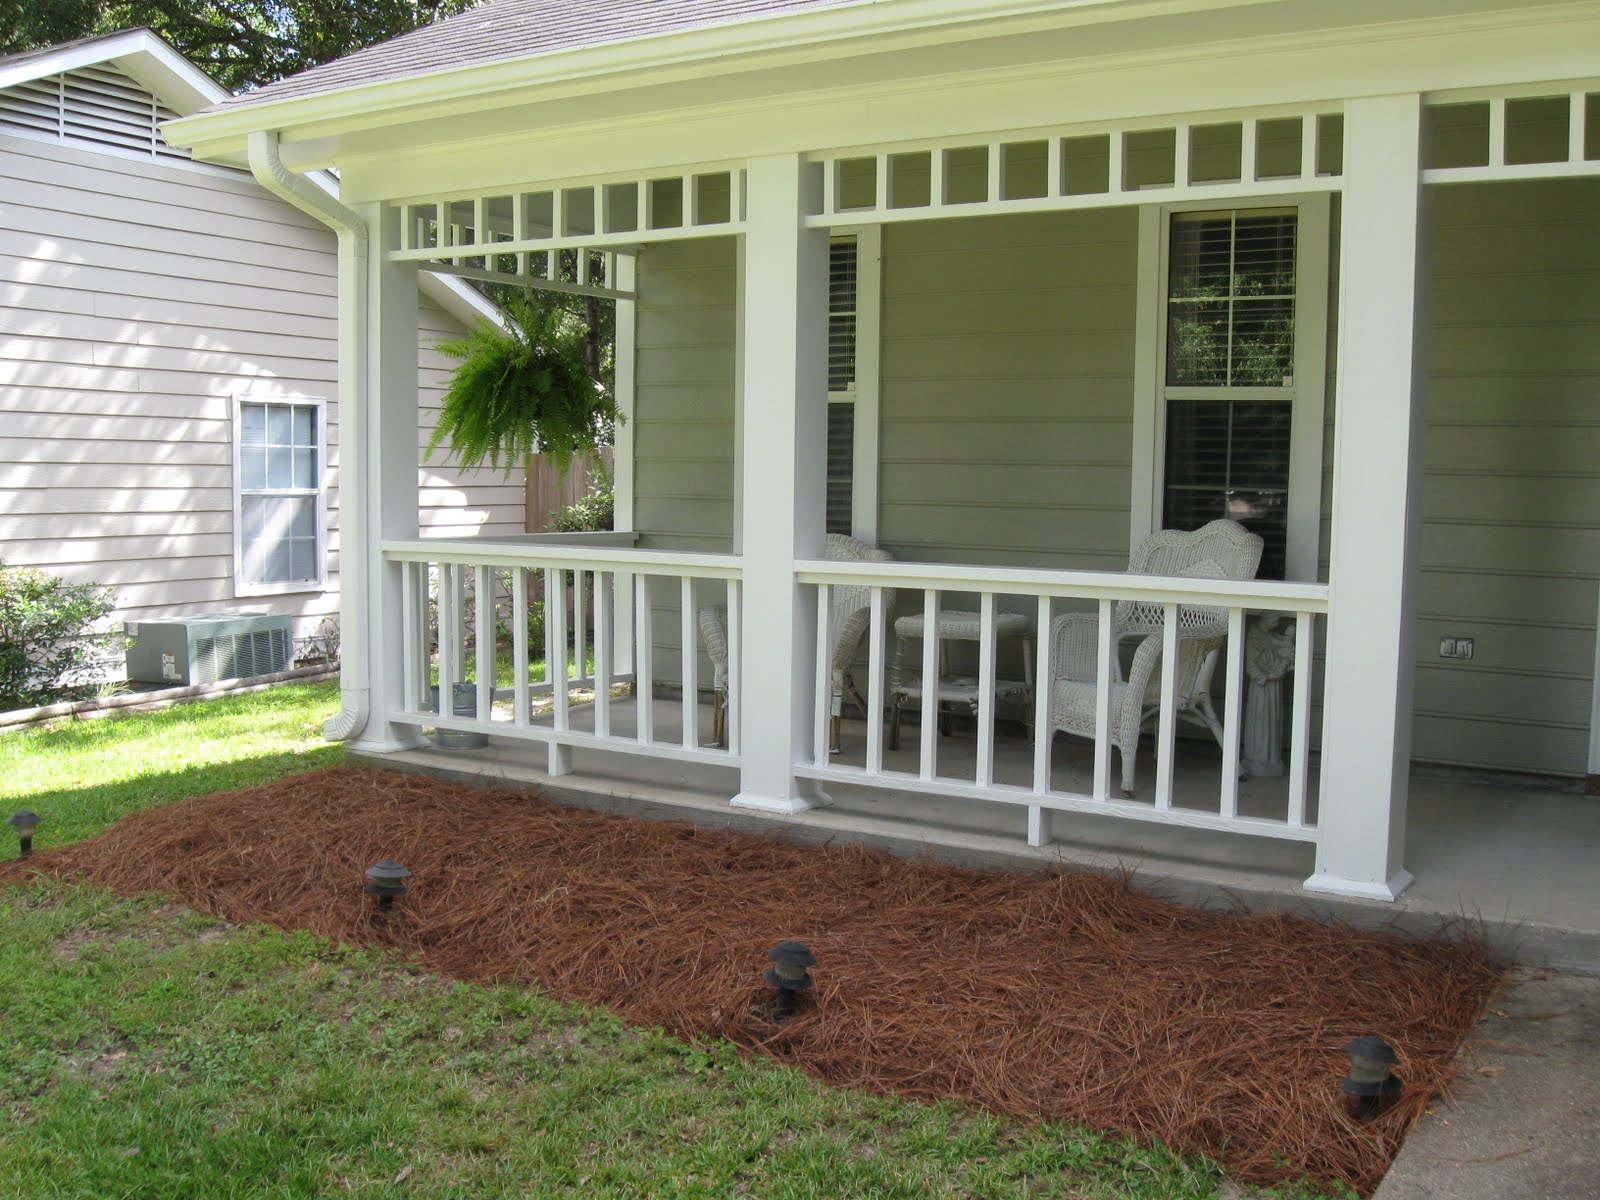 Around the house landscaping ideas house ideas for Landscaping around house